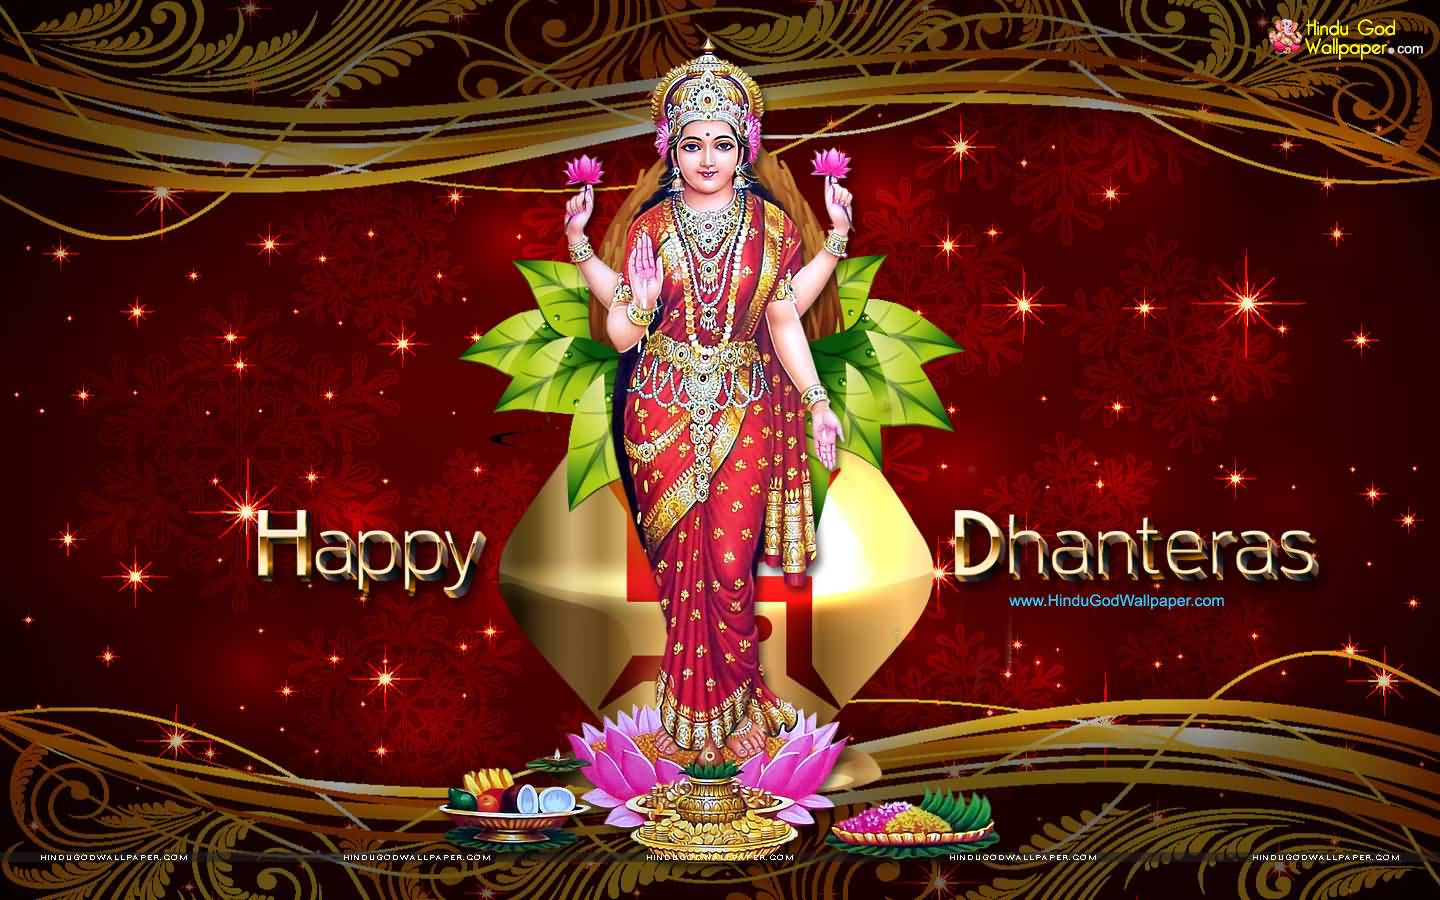 30 Happy Dhanteras 2016 Greeting Pictures And Photos 1440x900